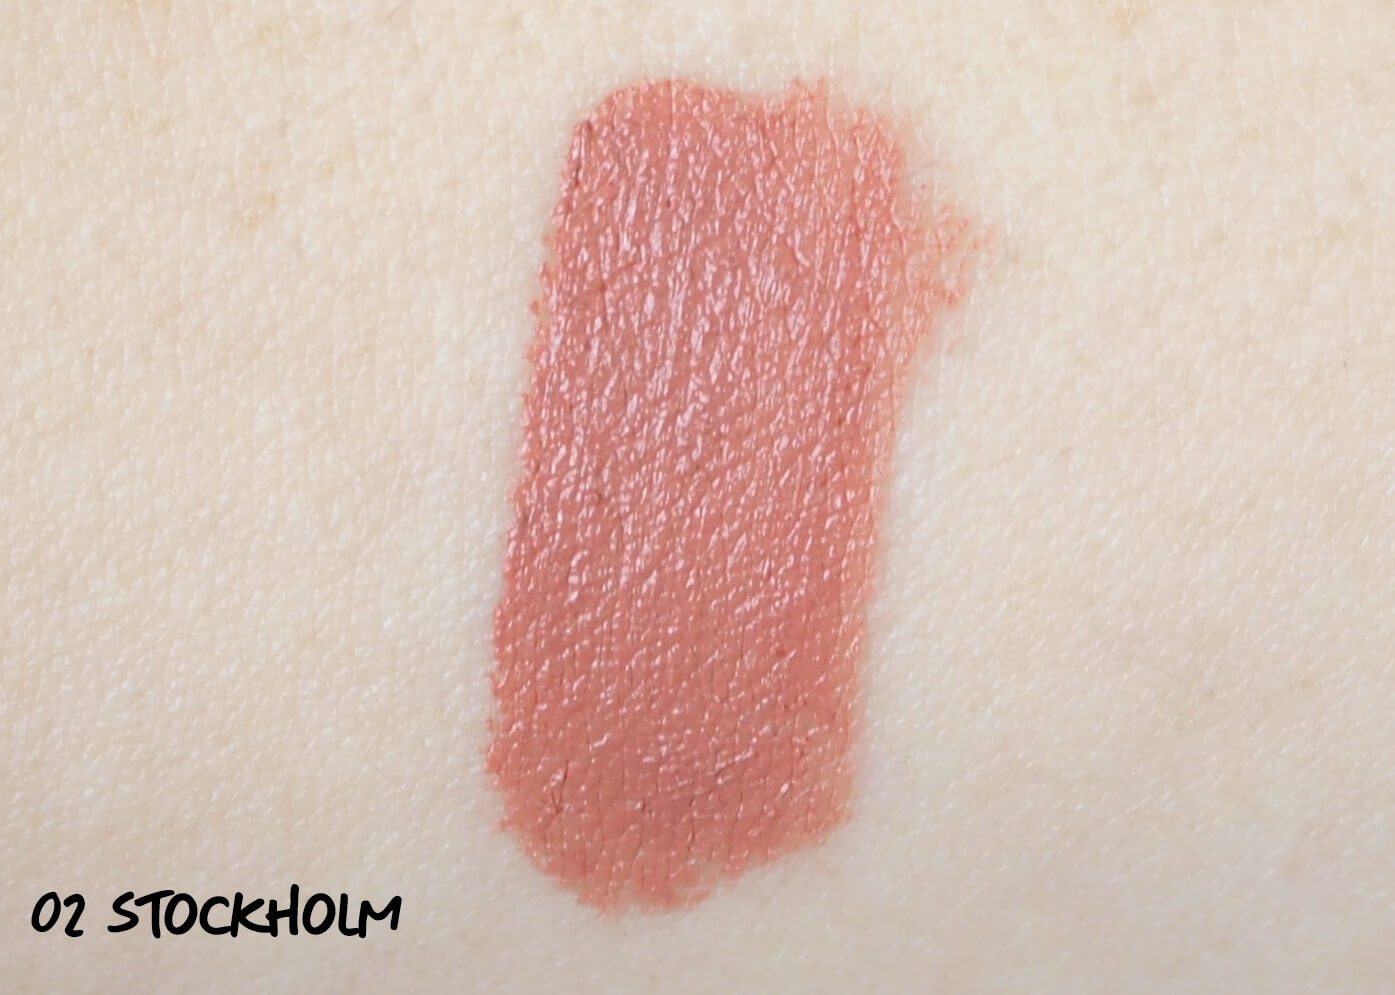 SWATCH STOCKHOLM Soft Matte Lip Cream